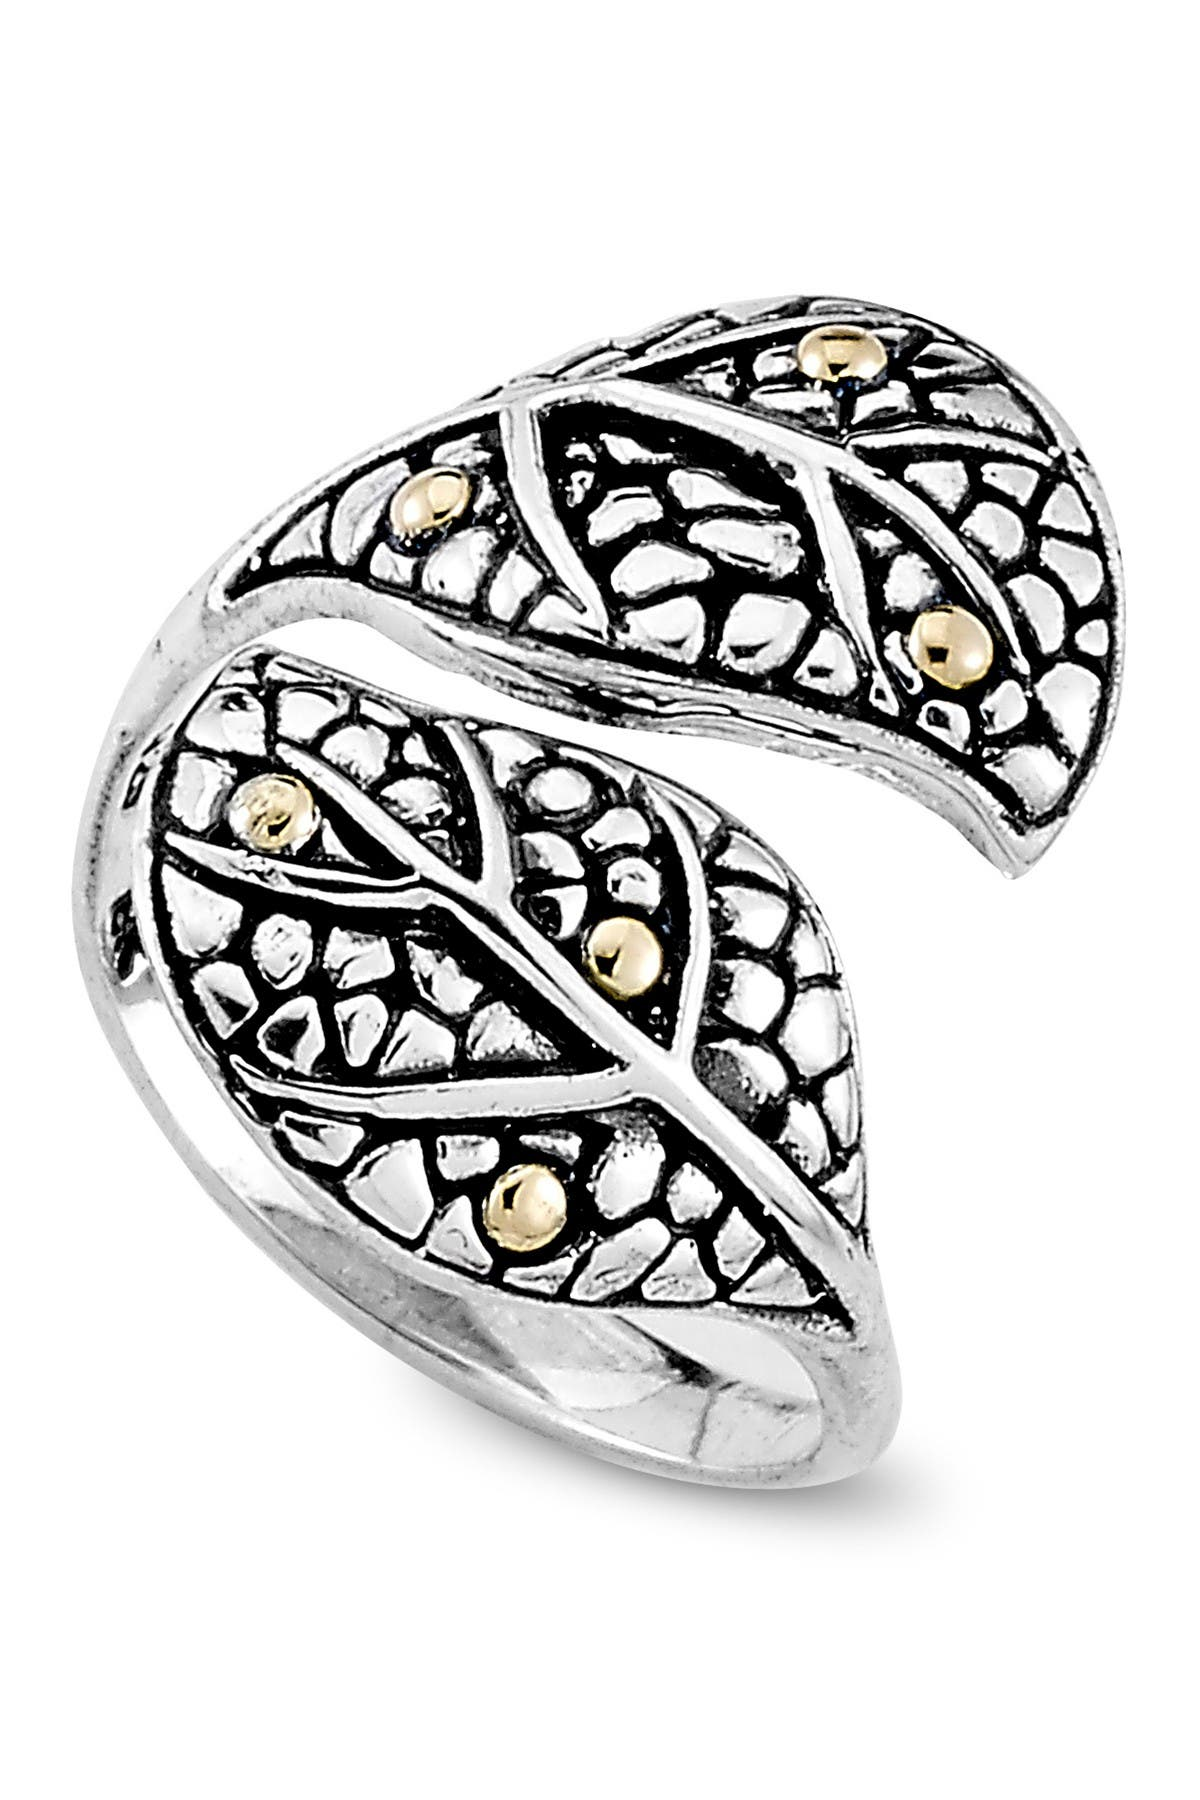 Image of Samuel B Jewelry Sterling Silver & 18K Yellow Gold Leaf Bypass Ring